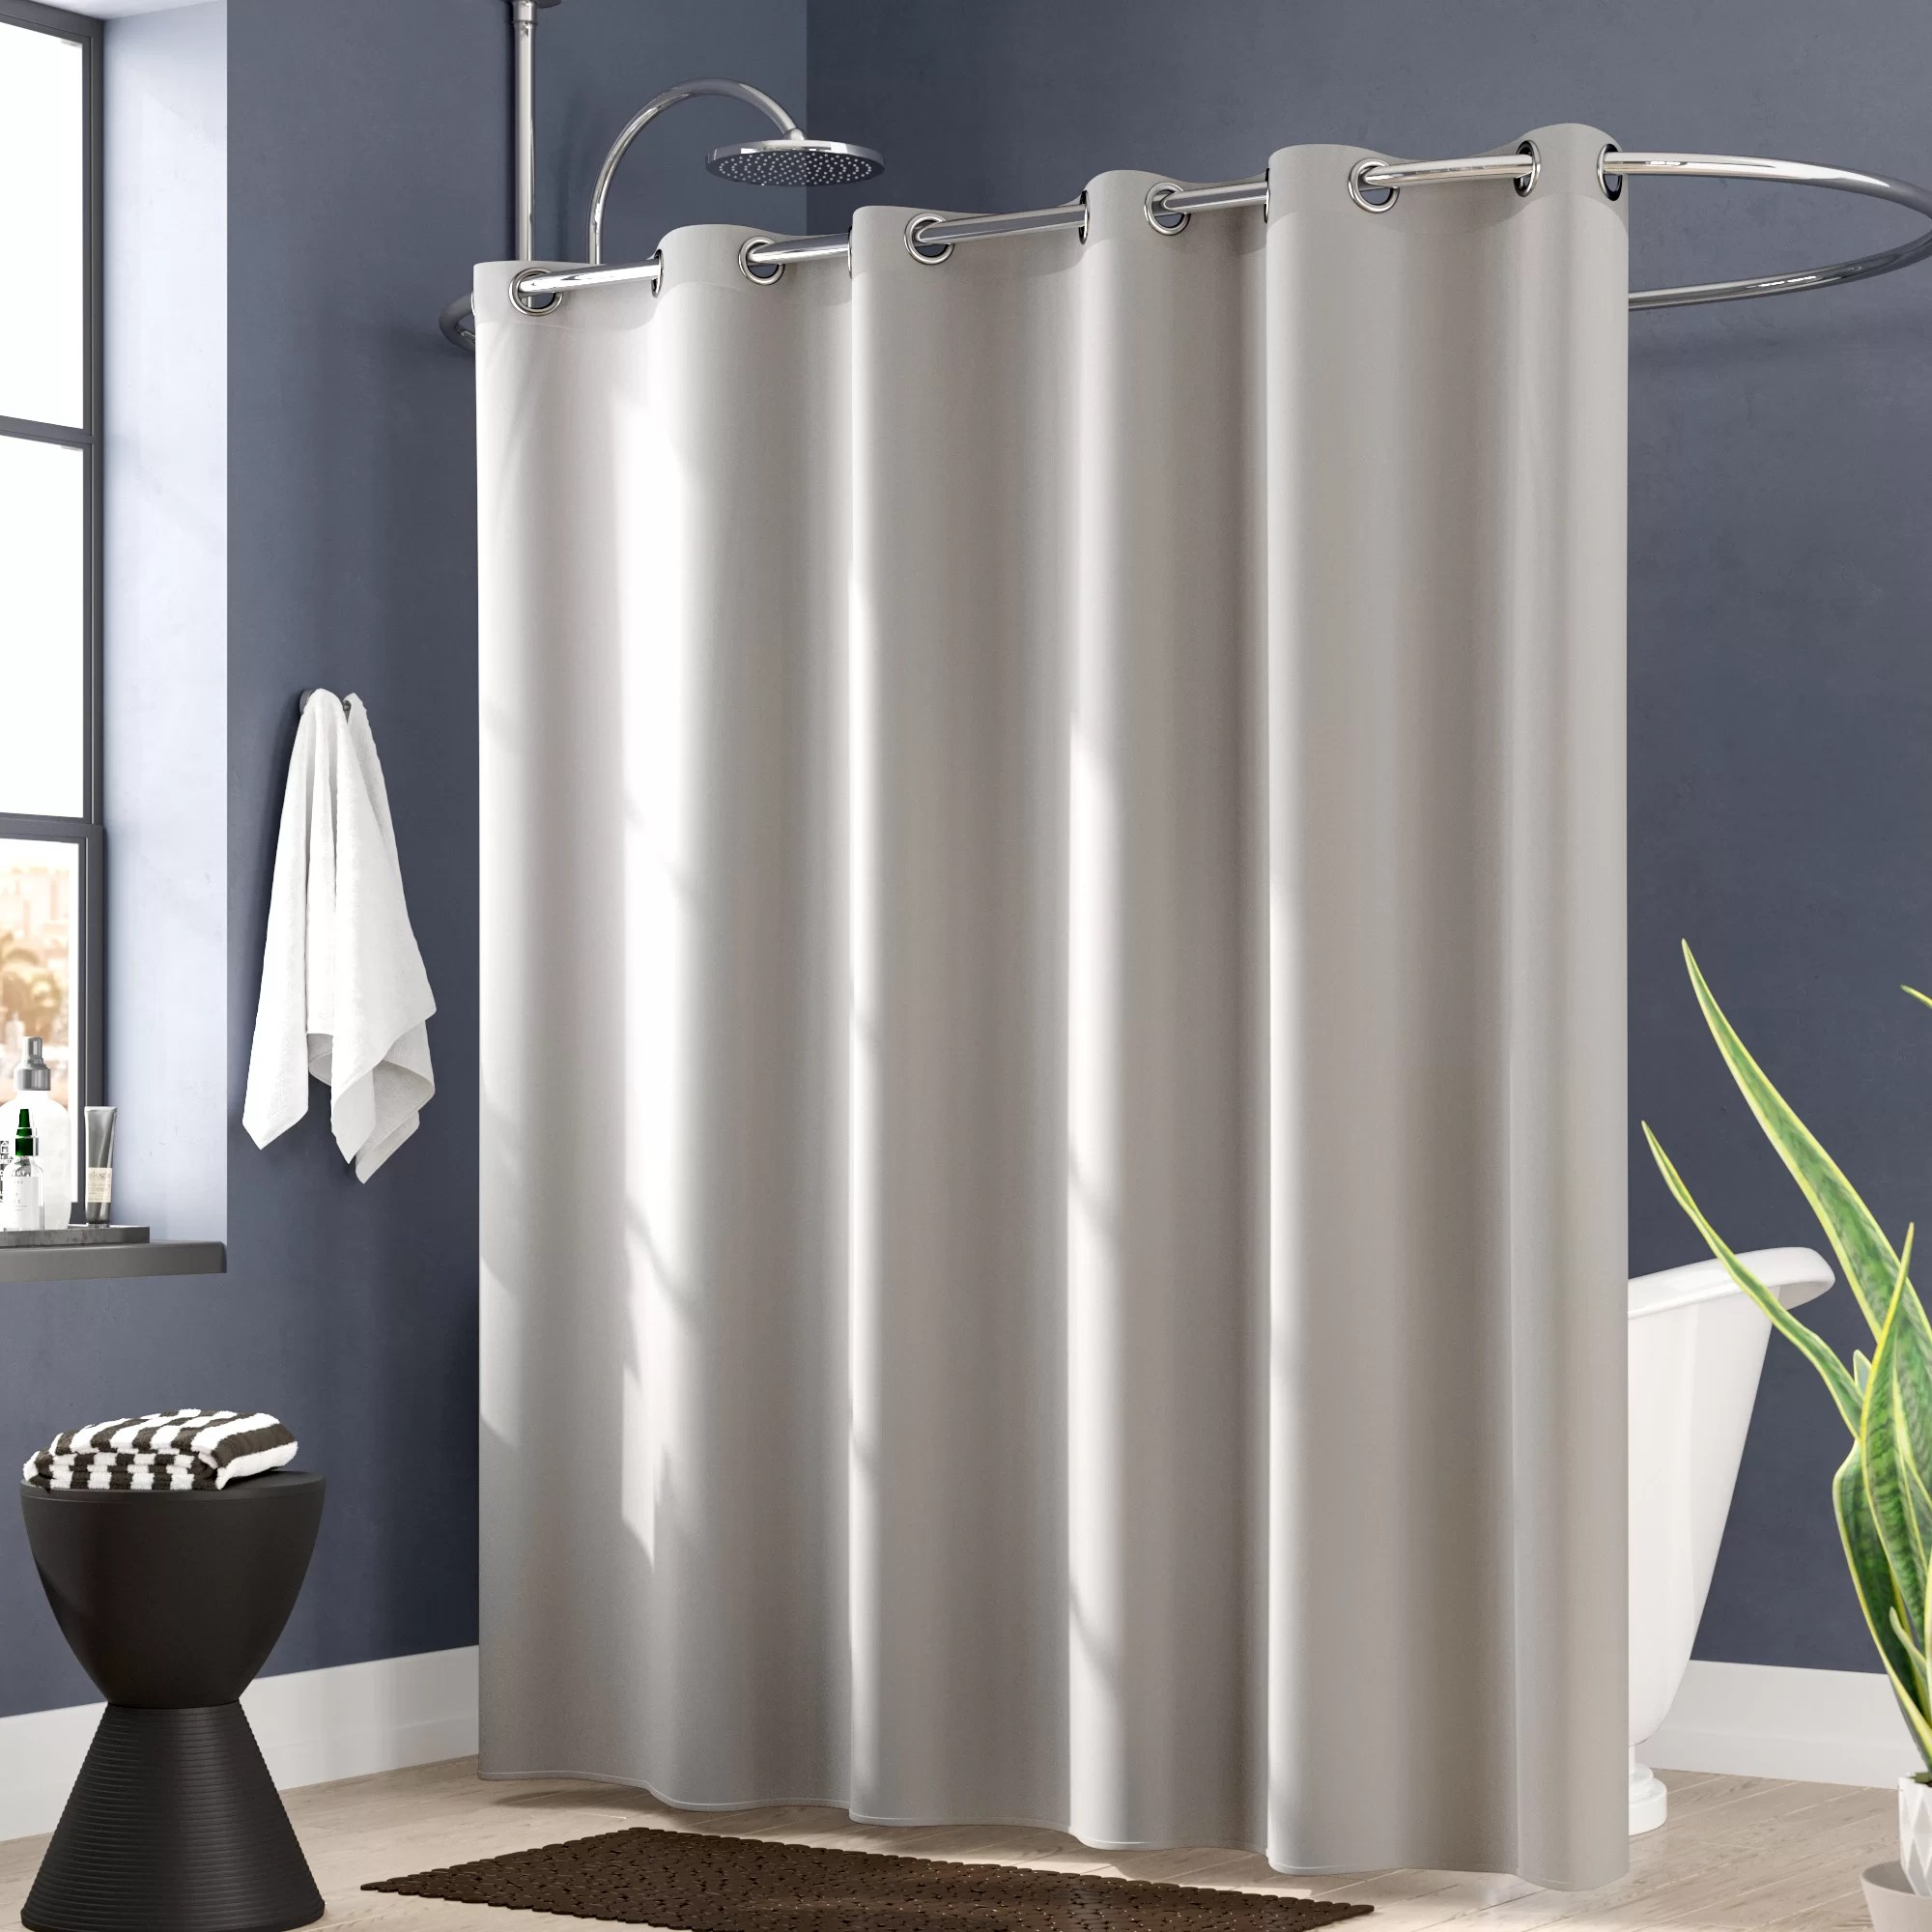 Shower Curtains For Less Jethro Solid Shower Curtain